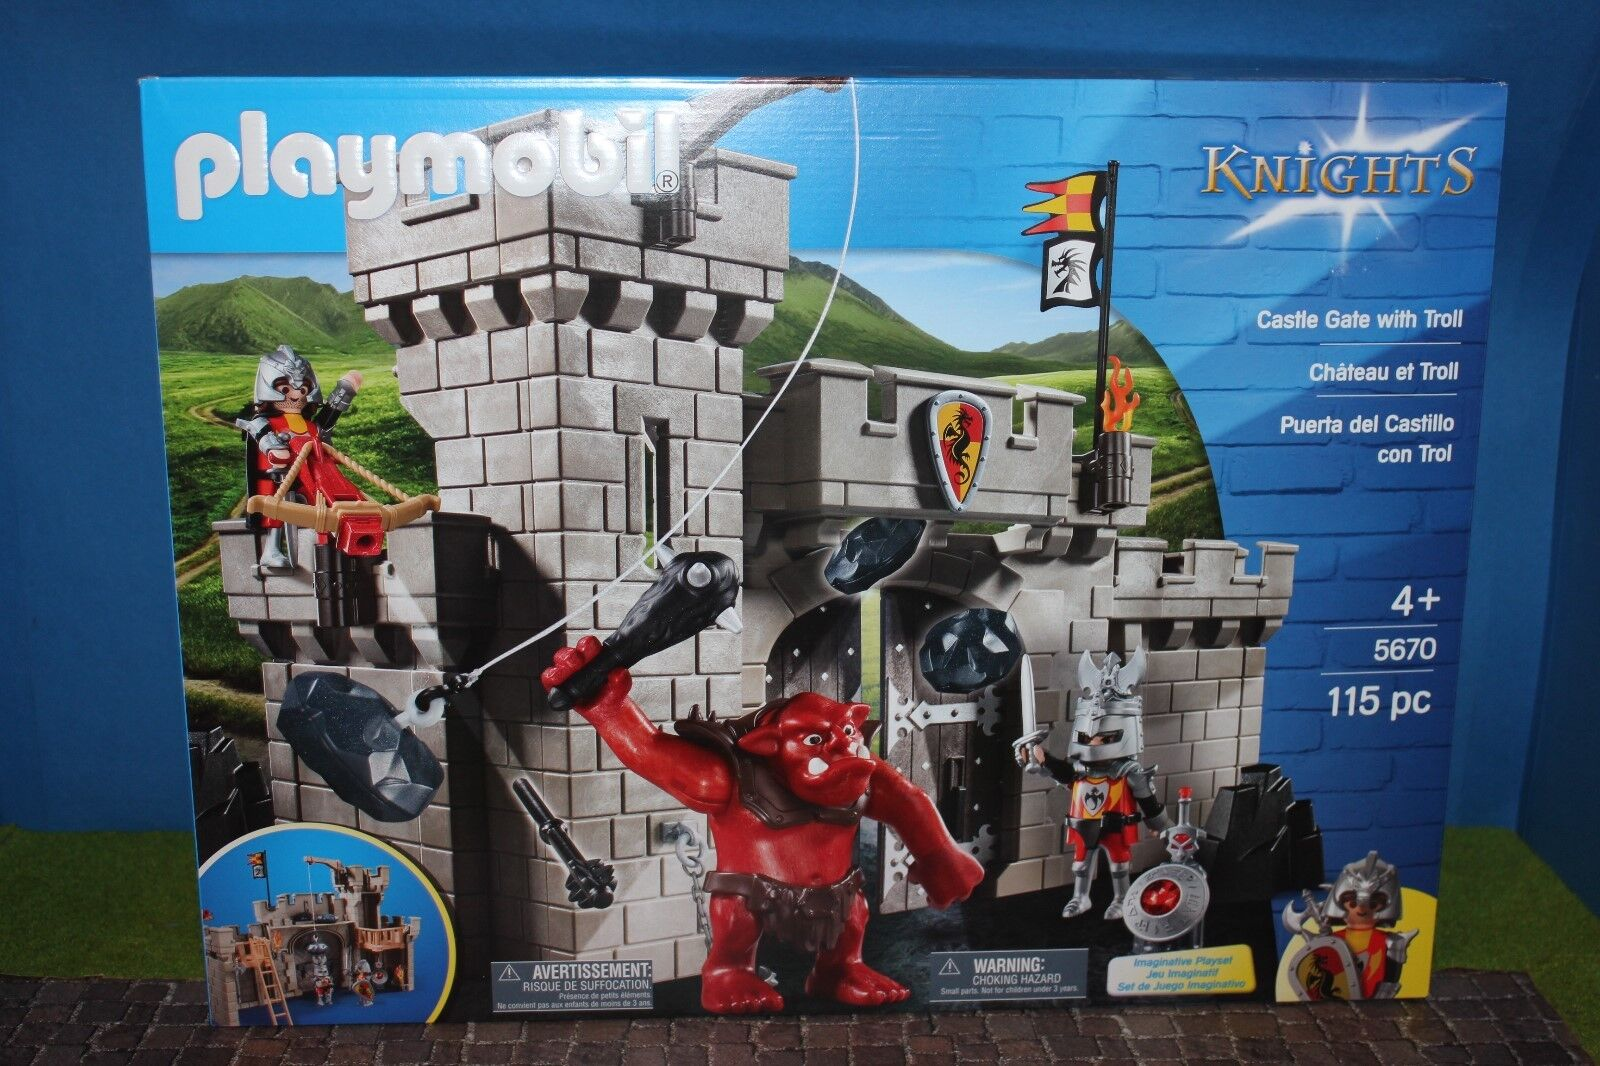 Playmobil Knights Castle Gate with Giant Troll 5670 New Sealed Misb